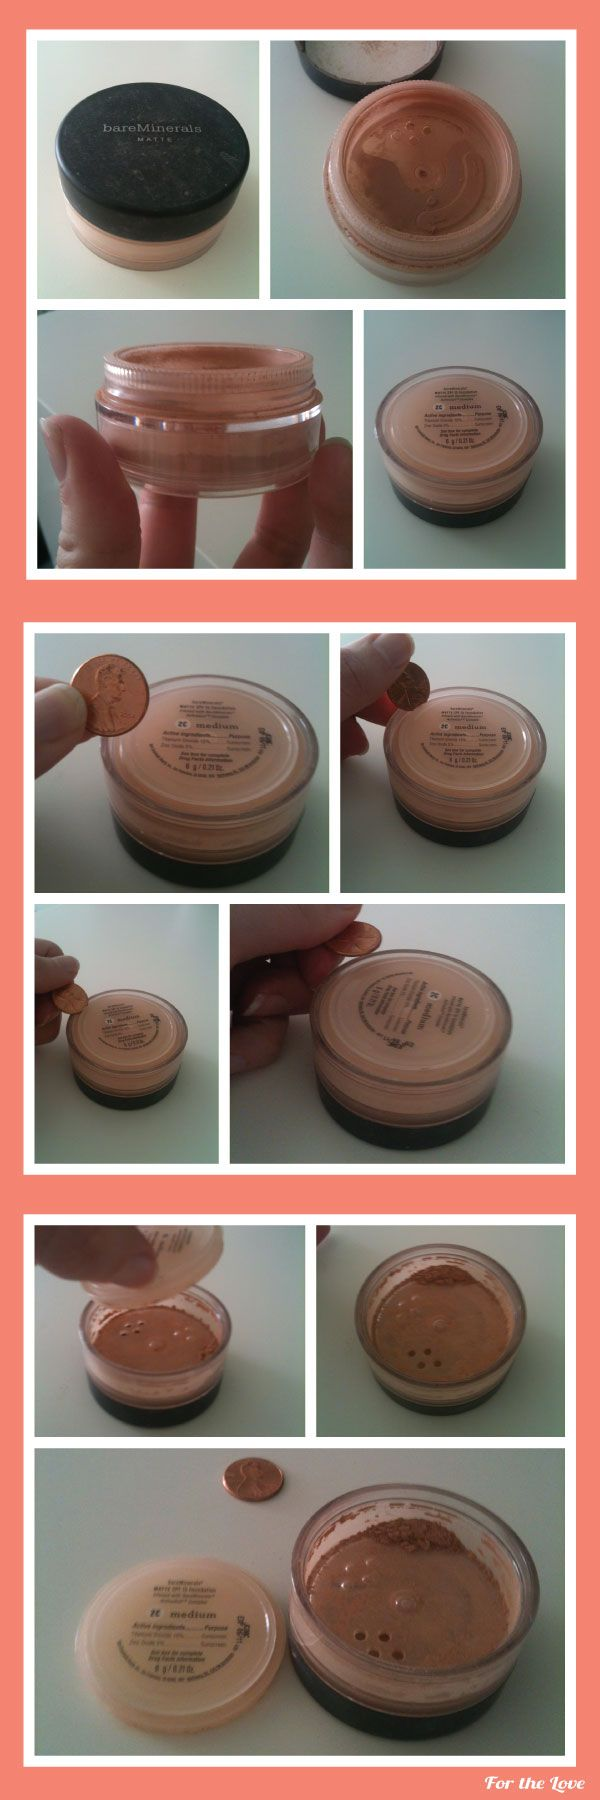 I Am In Love With Bare Minerals Makeup And Have Been A Loyal Customer